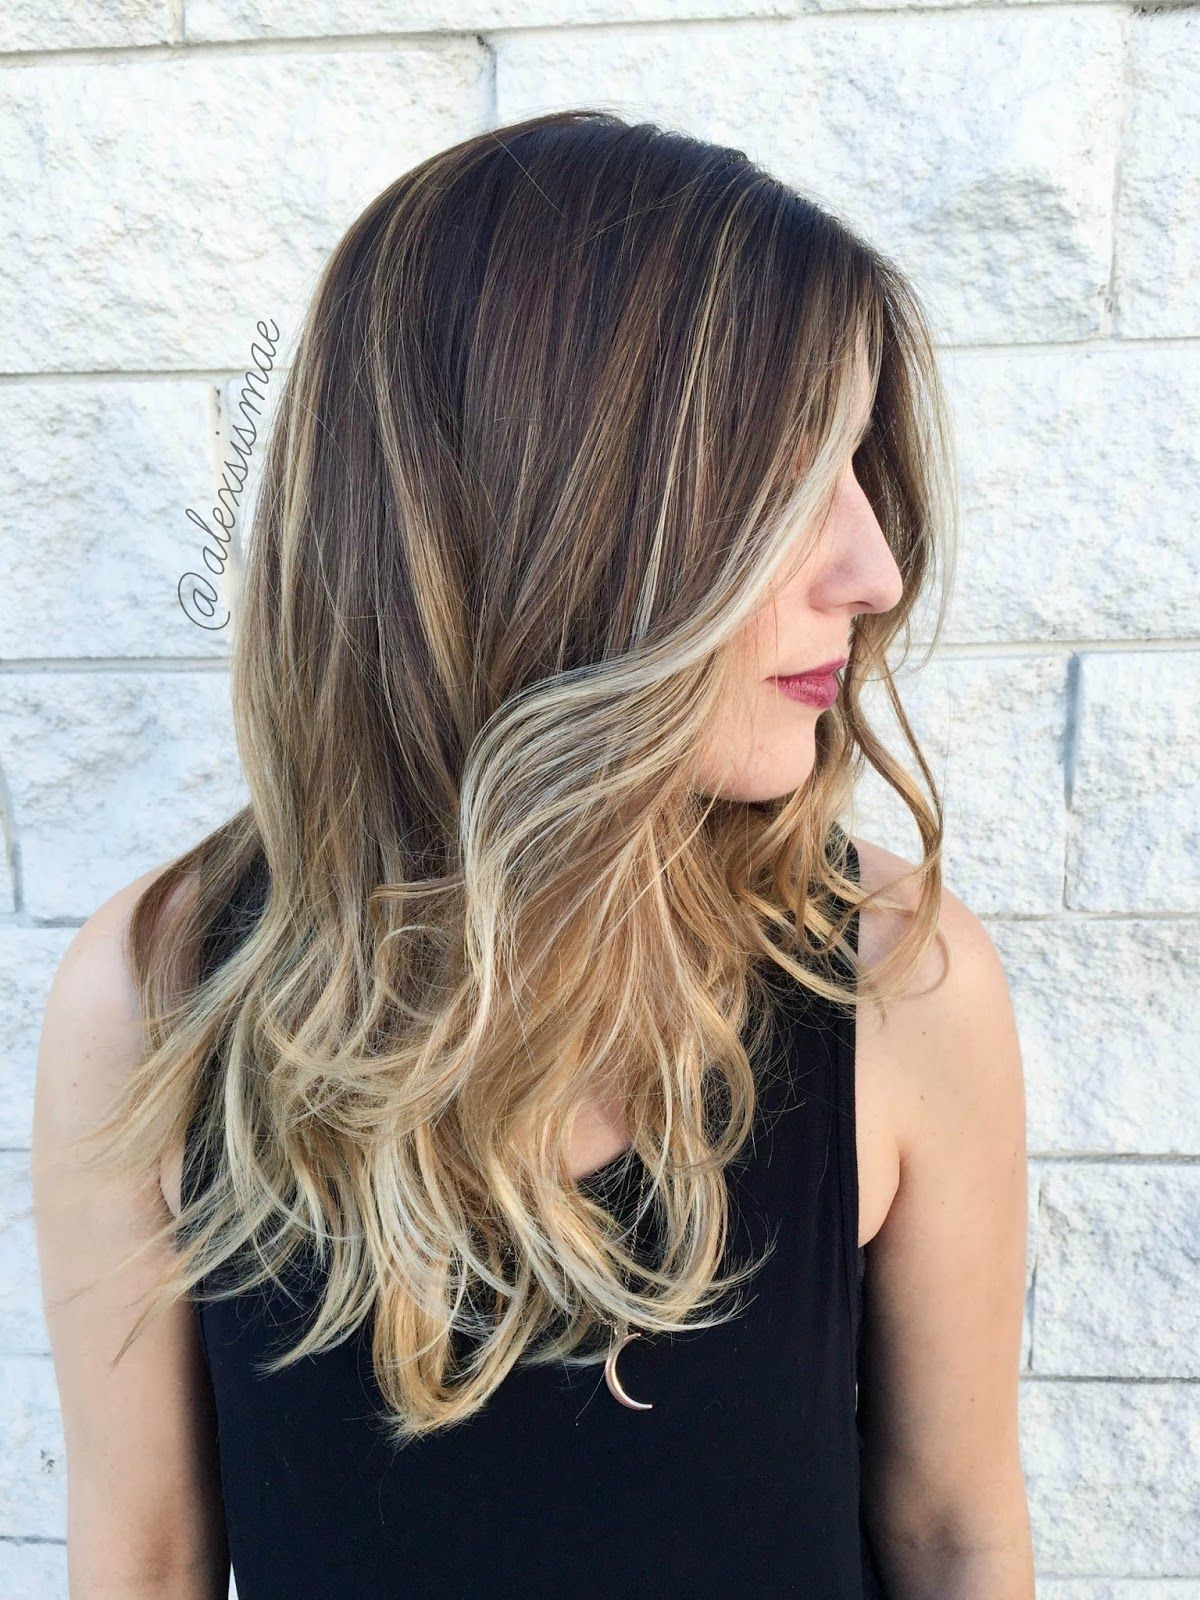 Alexsis Mae Fall Sombre Hair Color Ft New Redken Shades Eq 09p